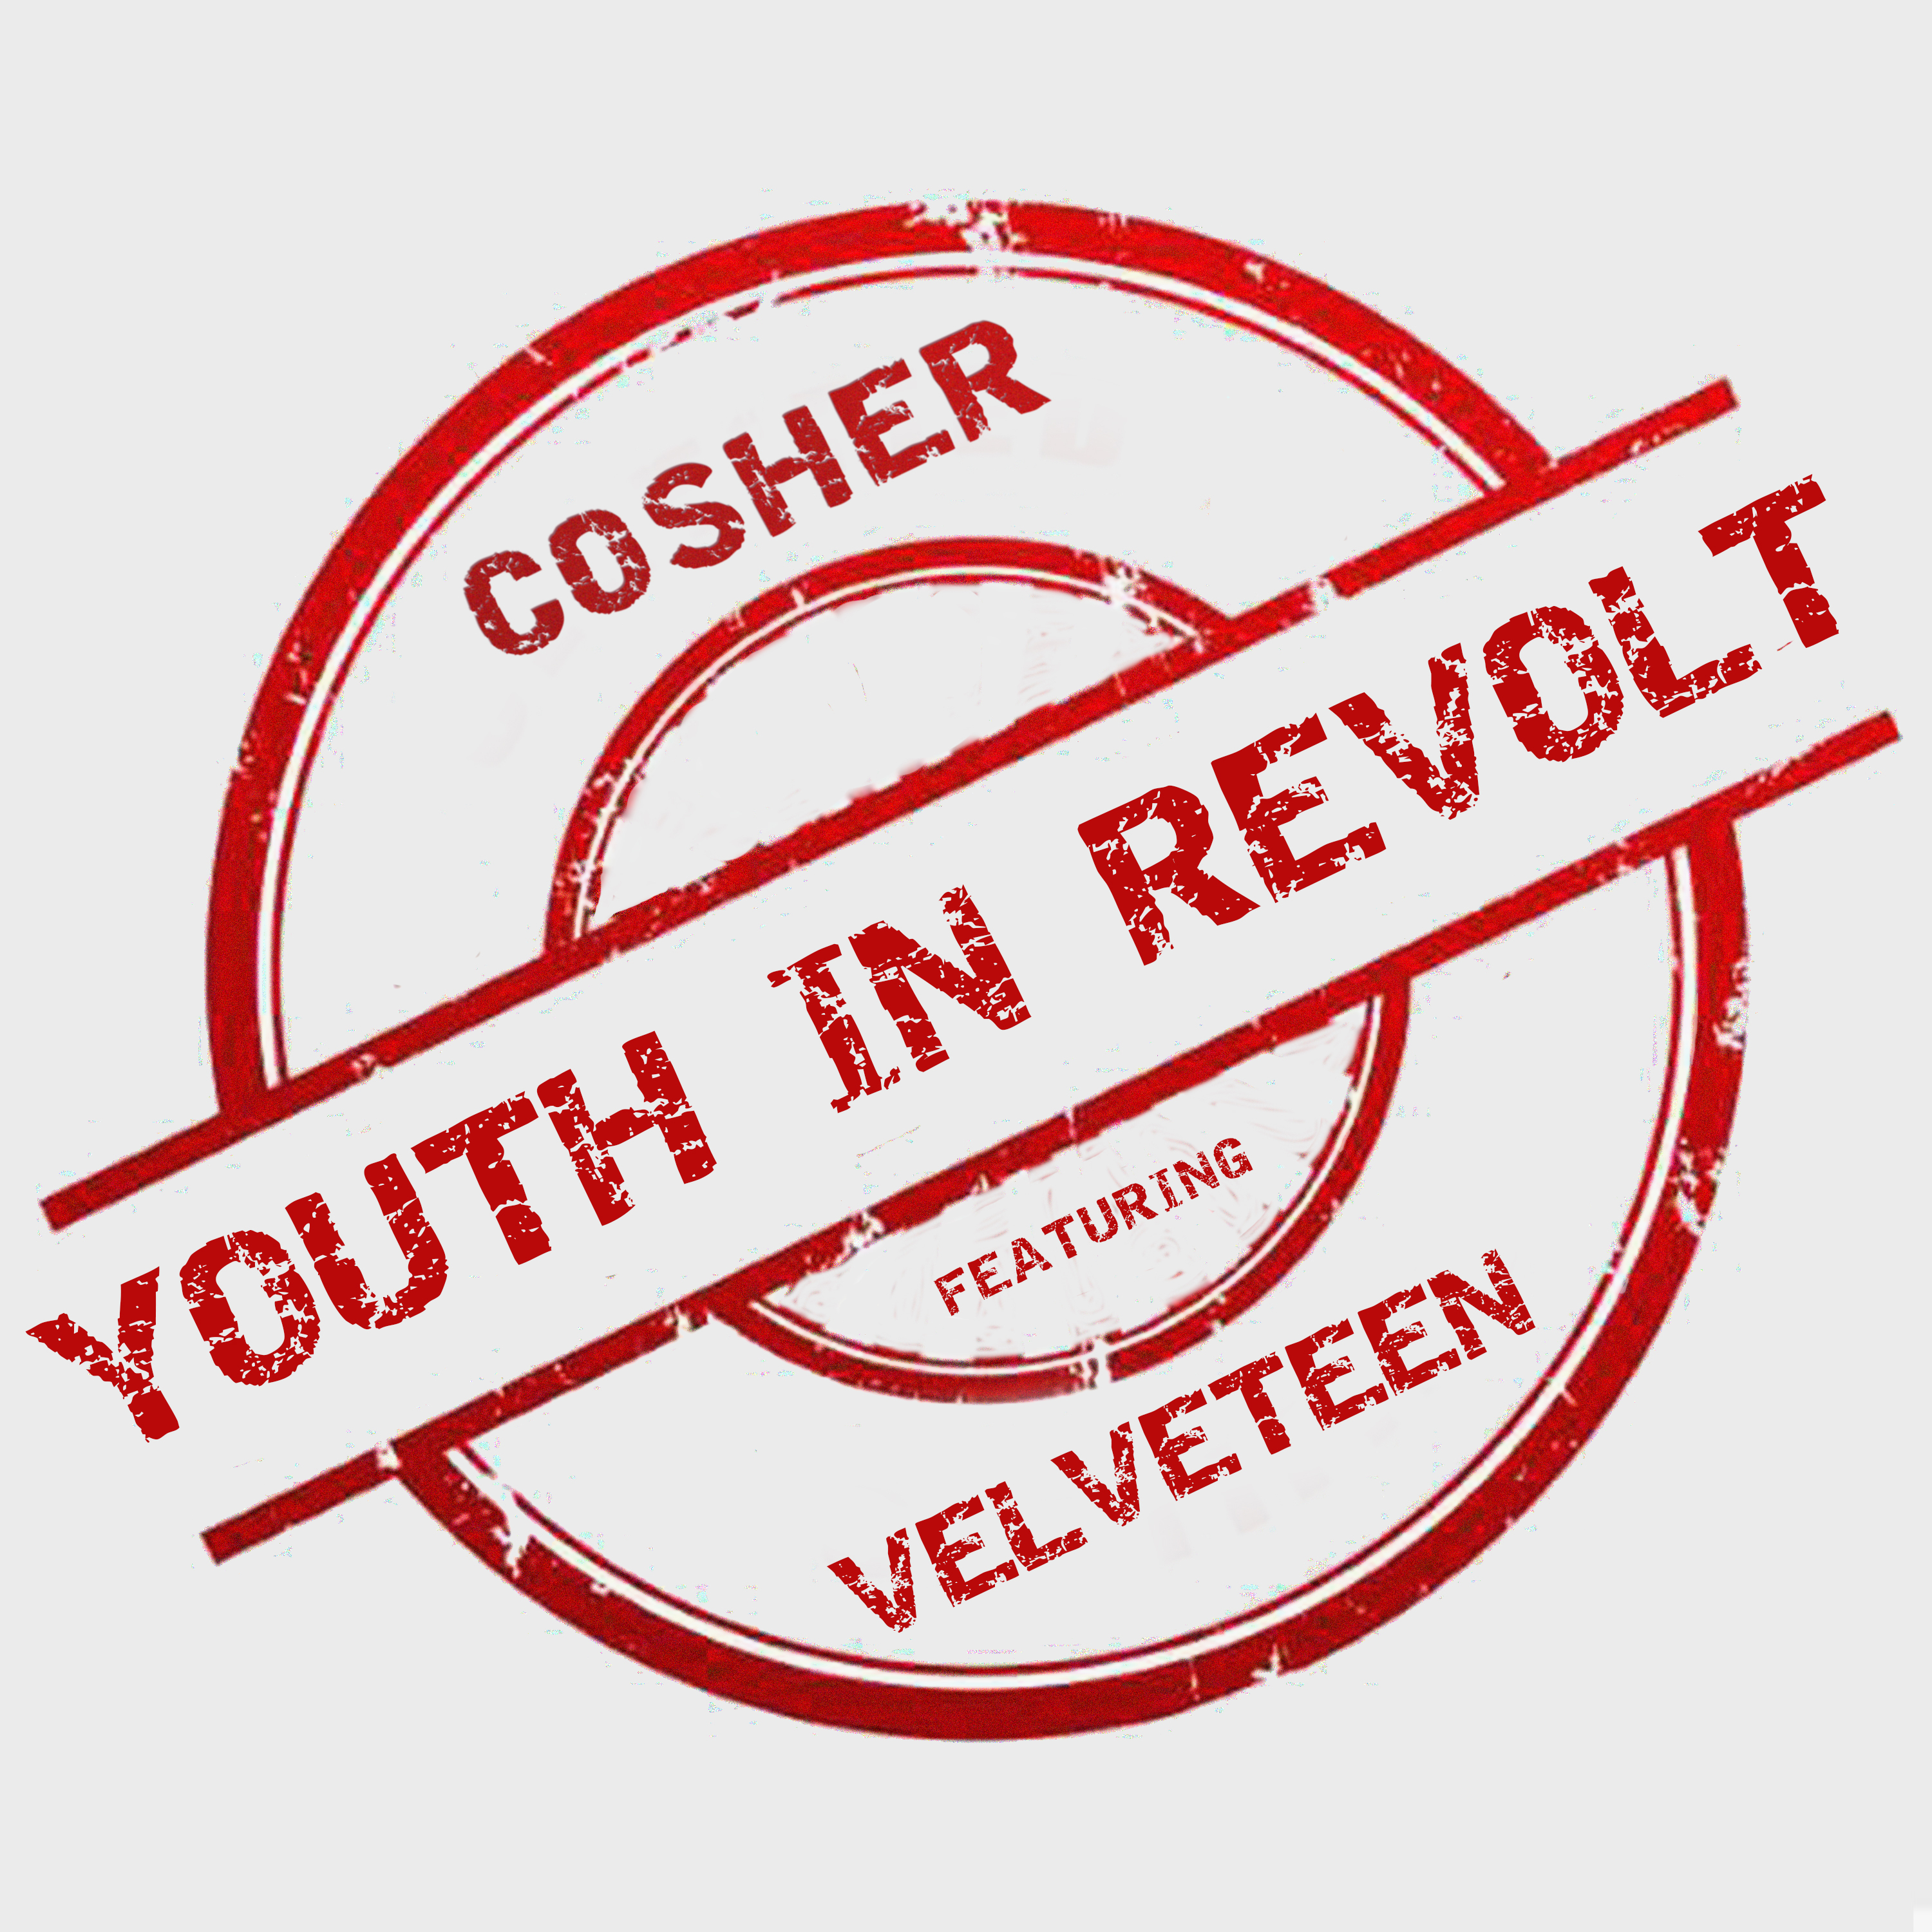 """Cosher Releases Latest House Track with the Talented Velveteen called """"Youth in Revolt"""""""